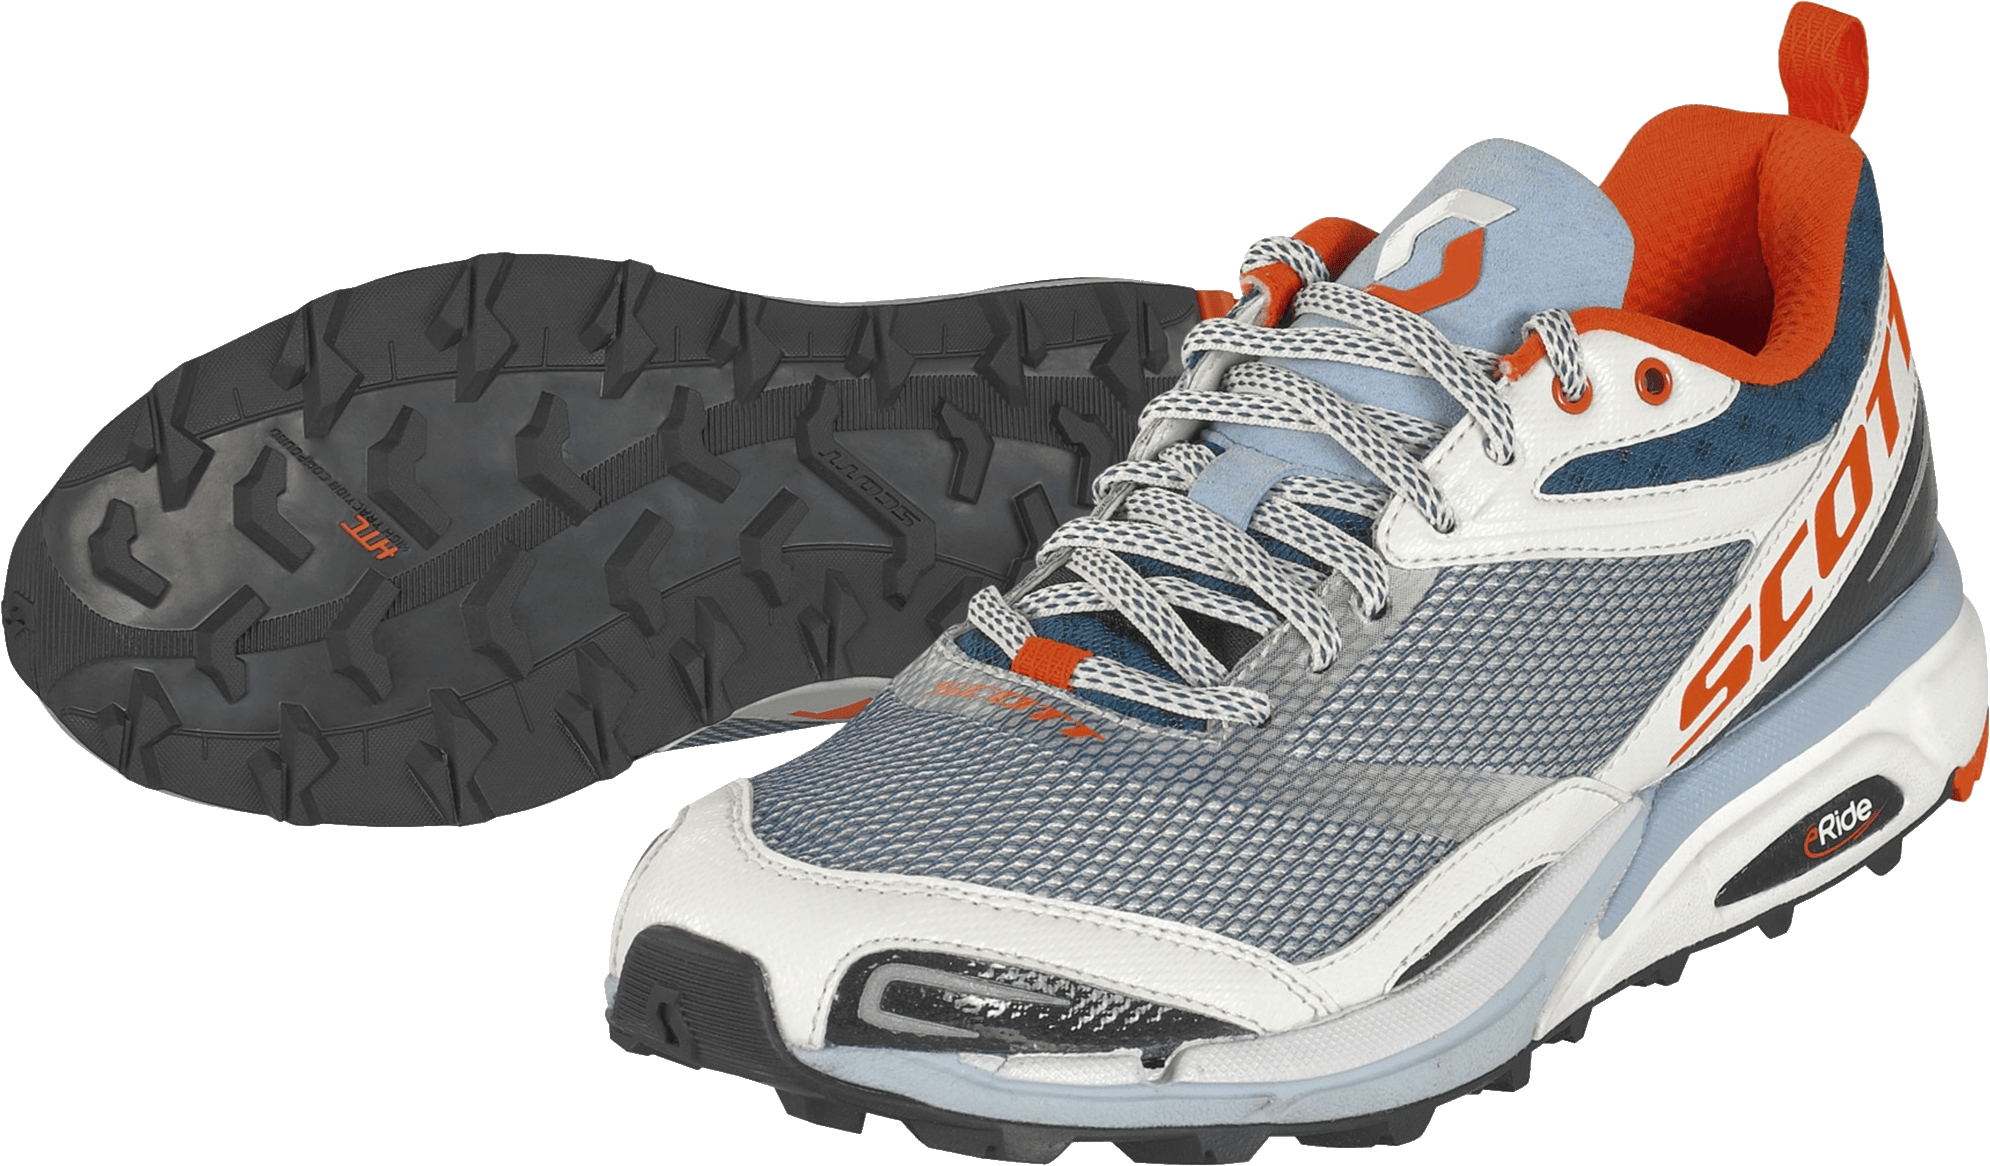 Download PNG image - Running Shoes Png Image 590